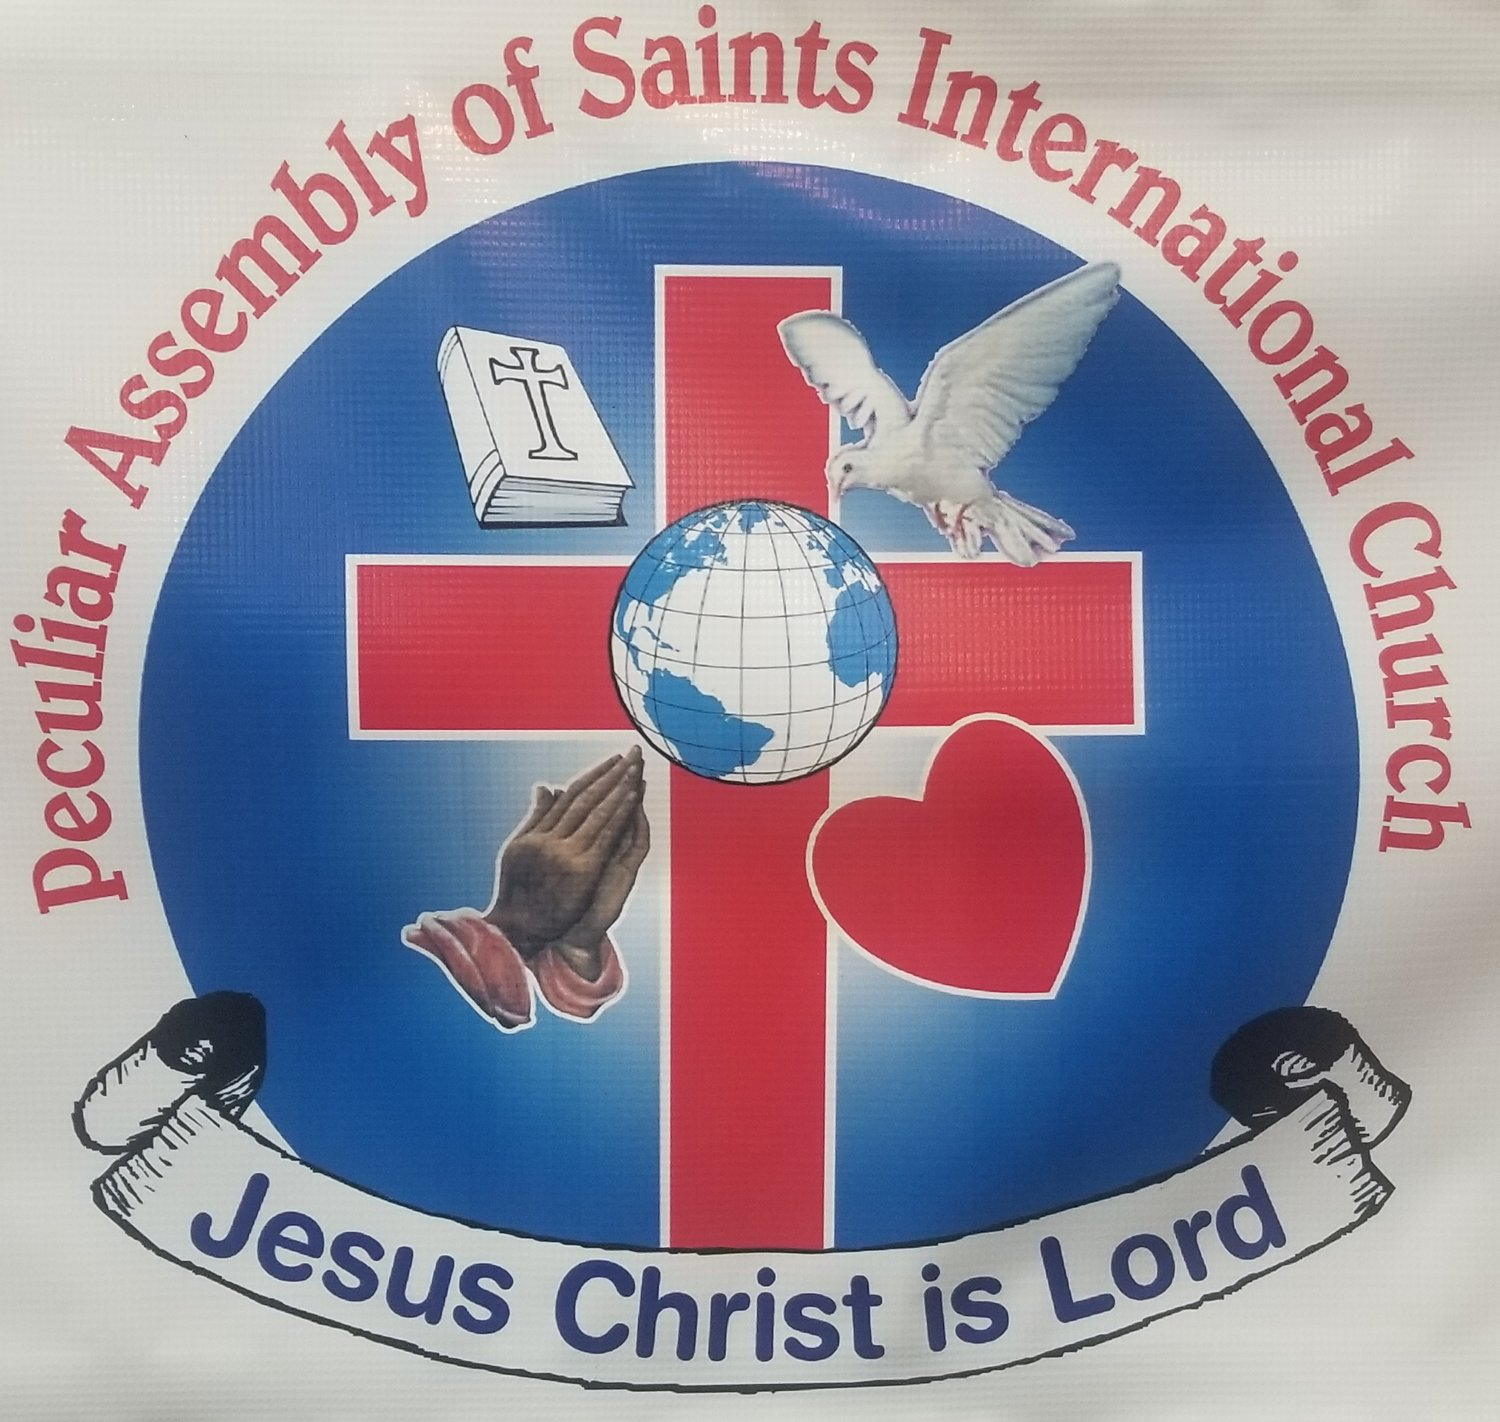 Peculiar Assembly of Saints Intl Church (Home of Miracles)